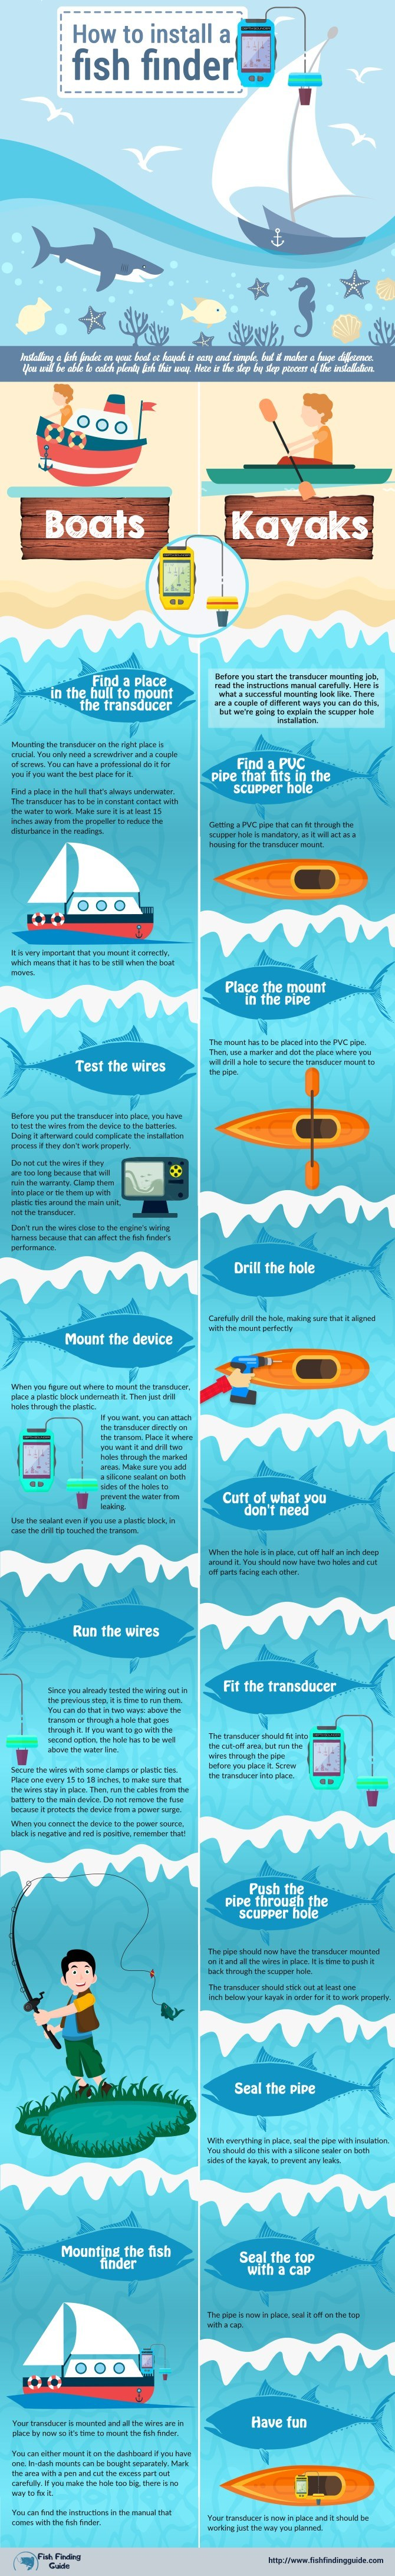 How To Wire A Fishfinder Battery Fish Finding Guide Fishing Boat Wiring Harness Infographic